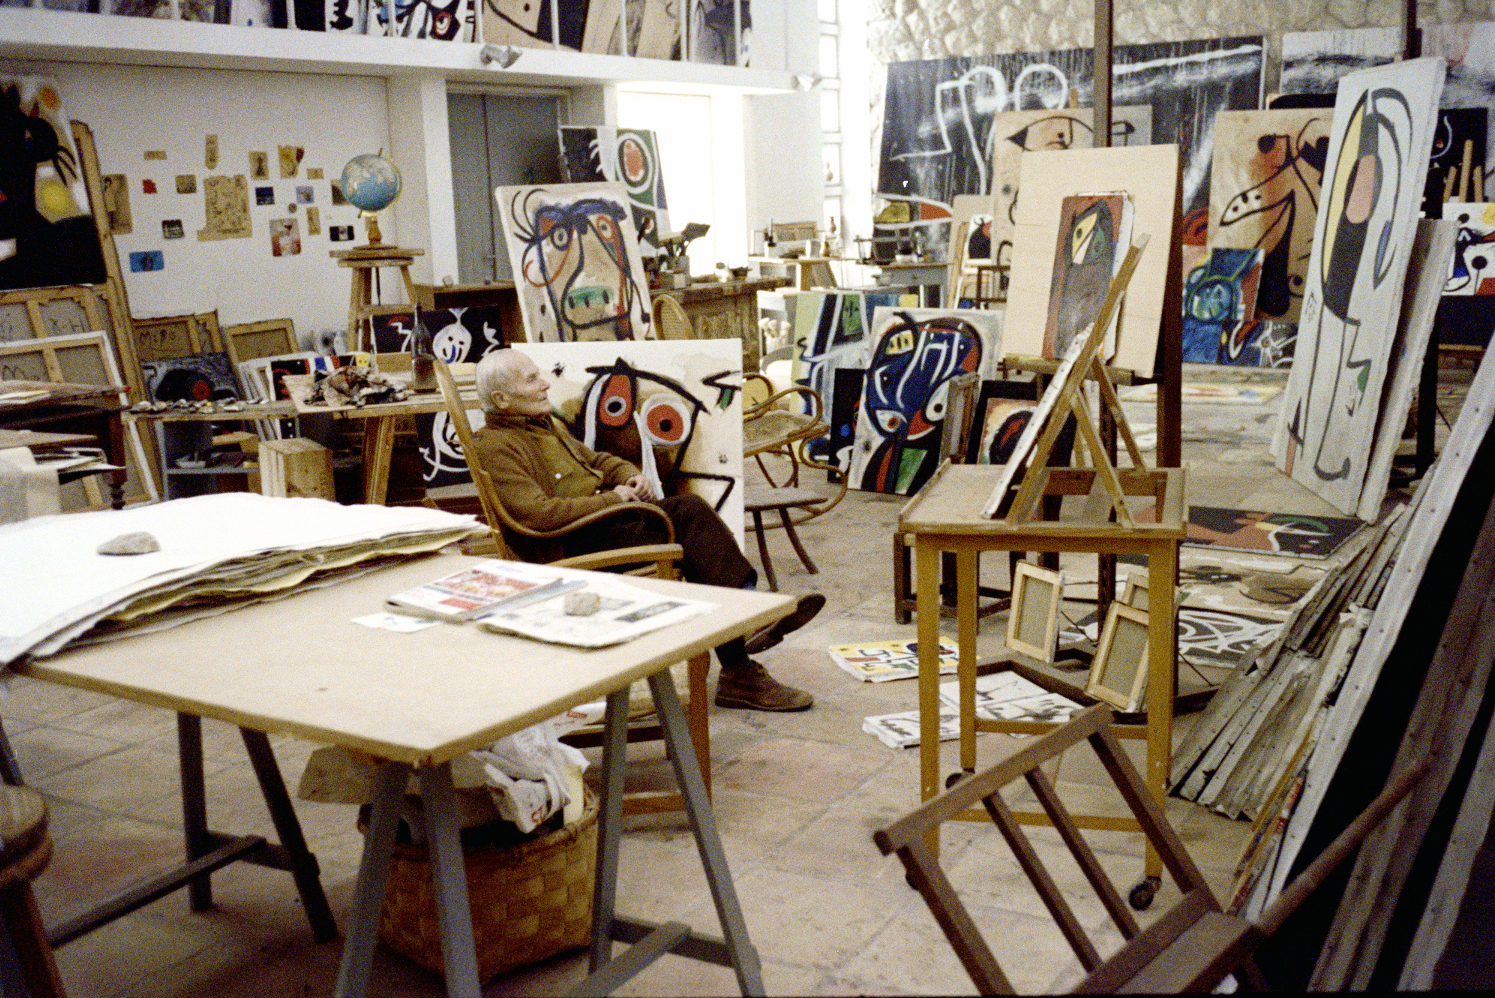 Joan Miró's studio, Mallorca, 1977, Photo Francesc Català-Roca © Photographic Archive of the Historical Archive of the College of Architects of Catalonia